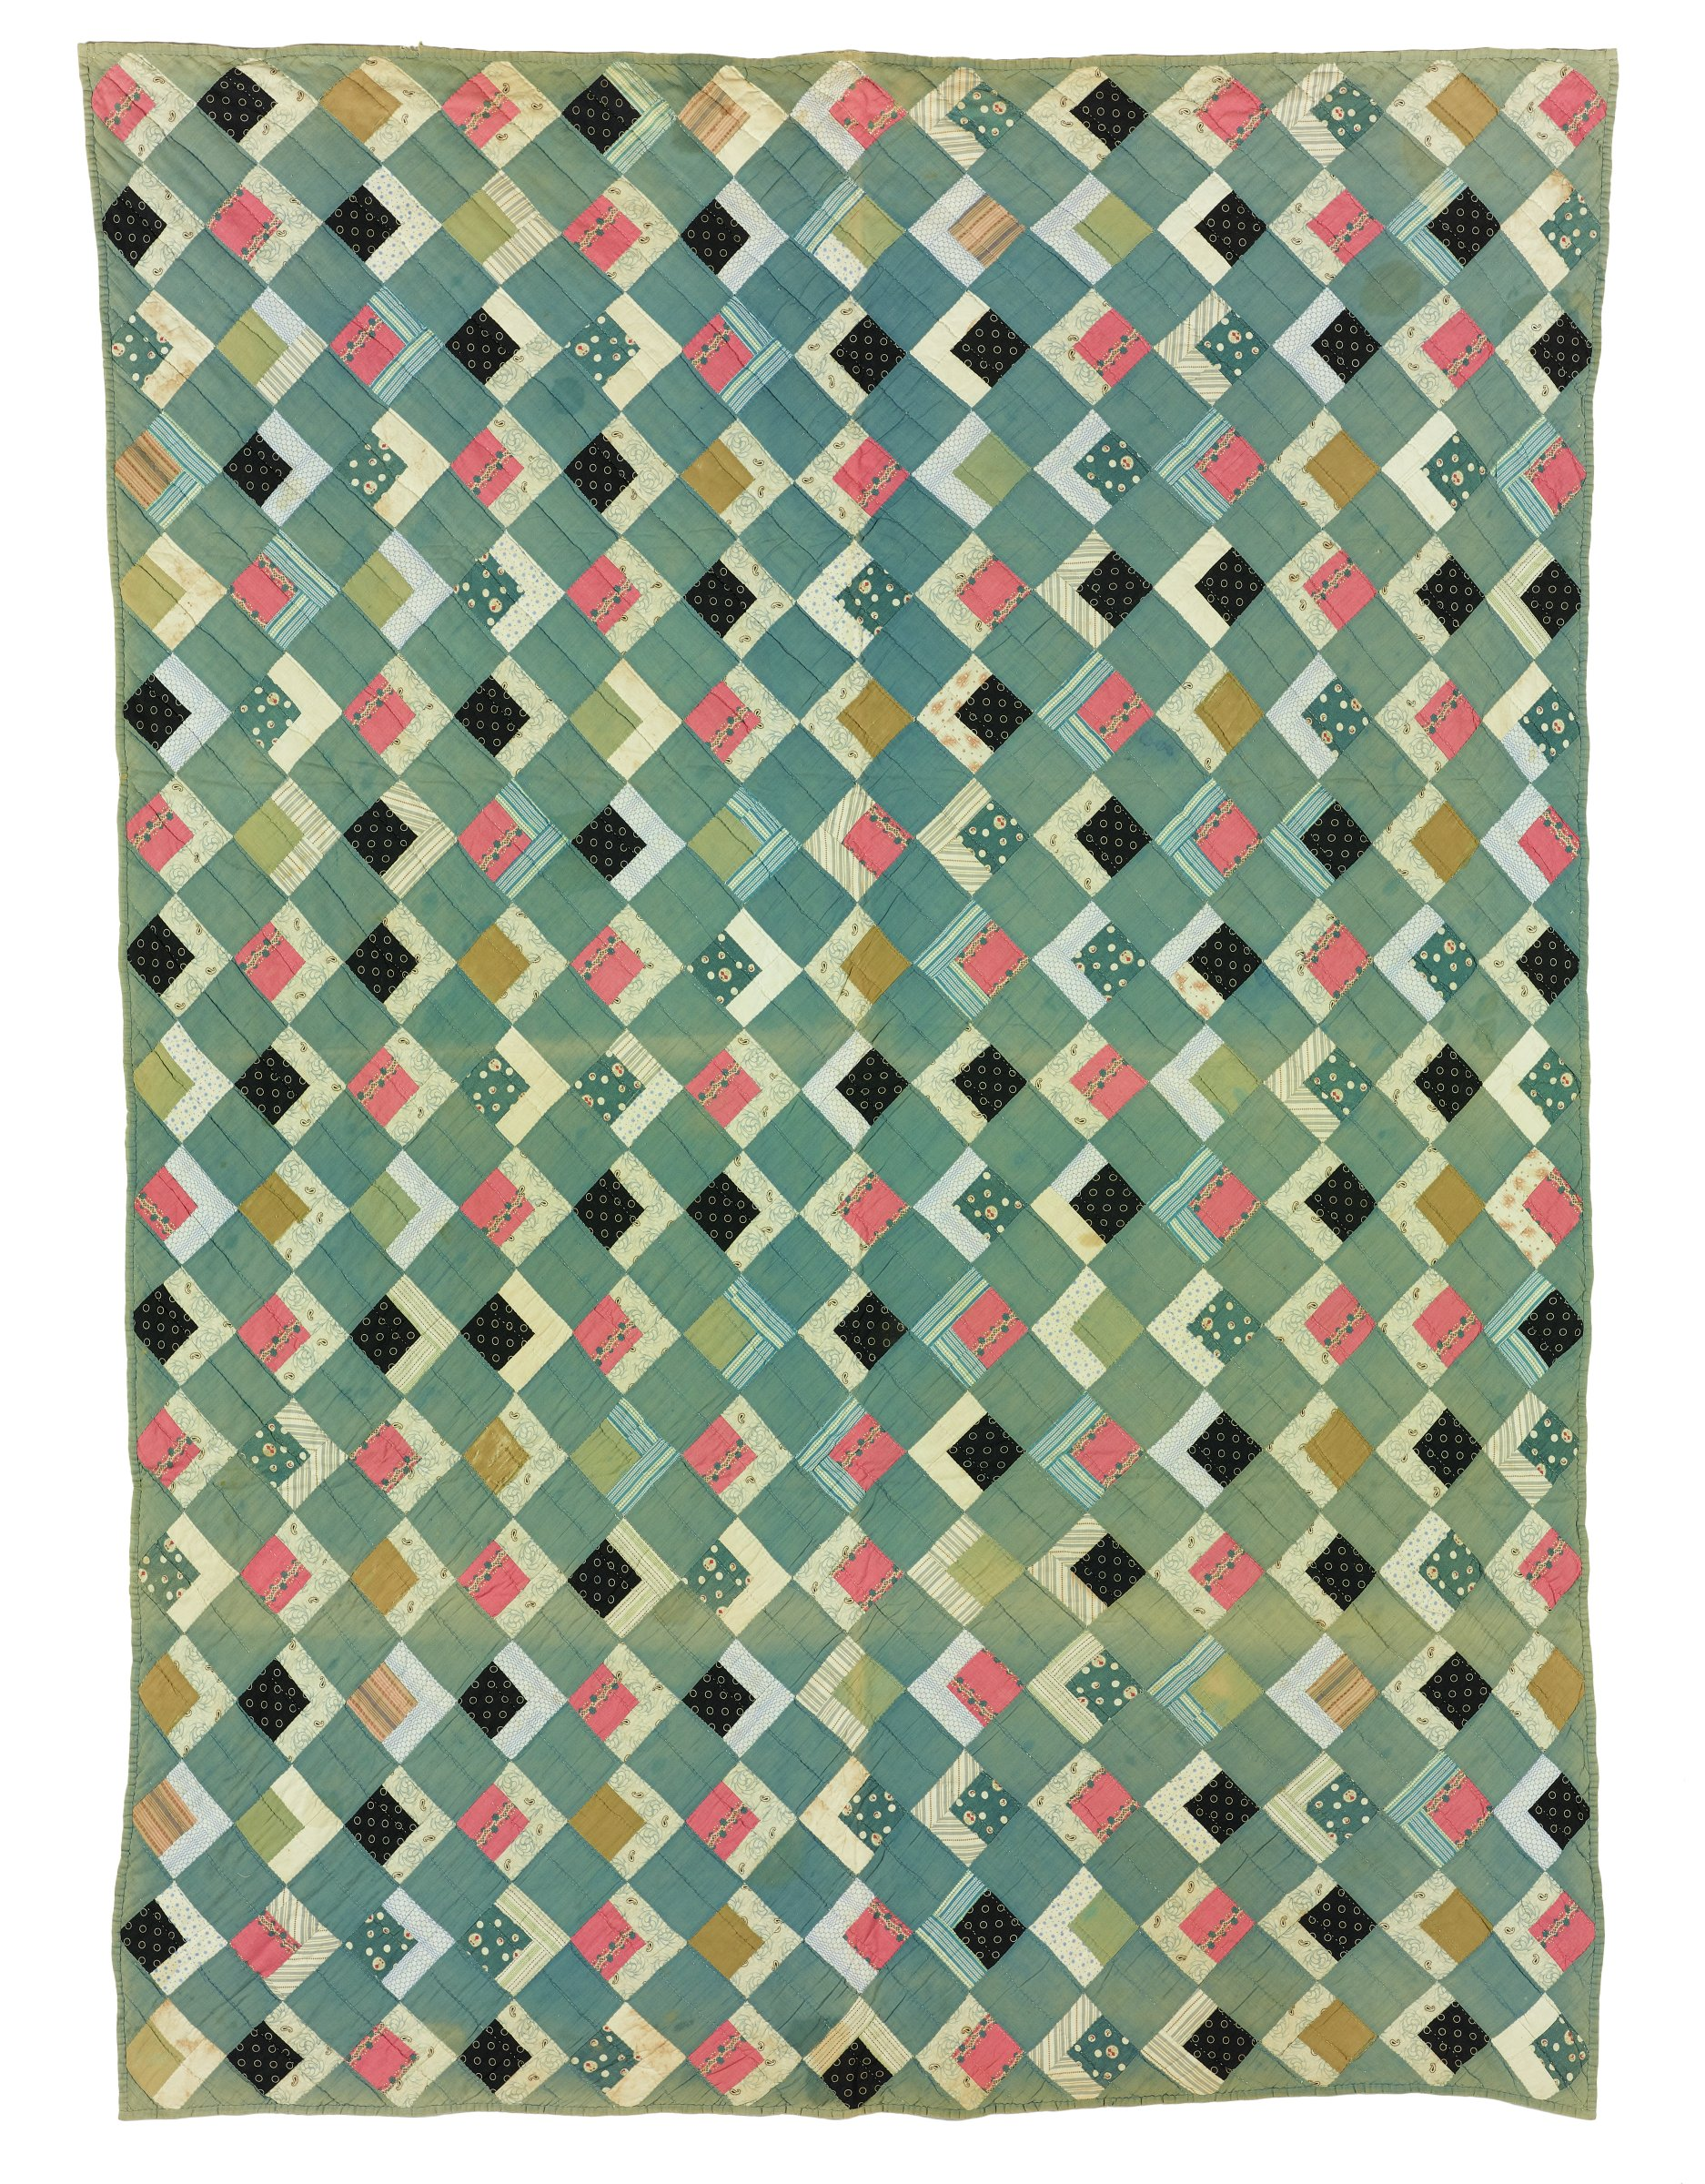 Large quilt of printed and plain cotton in a variation of the Log Cabin pattern, hand stitched and pieced with on the top a grid of squares on an angle of alternating solid teal green and colorful printed cotton, these each comprised of a smaller square and two rectangular pieces placed together in an L, the printed cotton in geometric, stripped, floral, and paisley patterns in shades of black, pink, blue, green, beige and brown, as well as plain white, the back of a woven unbleached cotton, edged in the same solid teal green cotton.